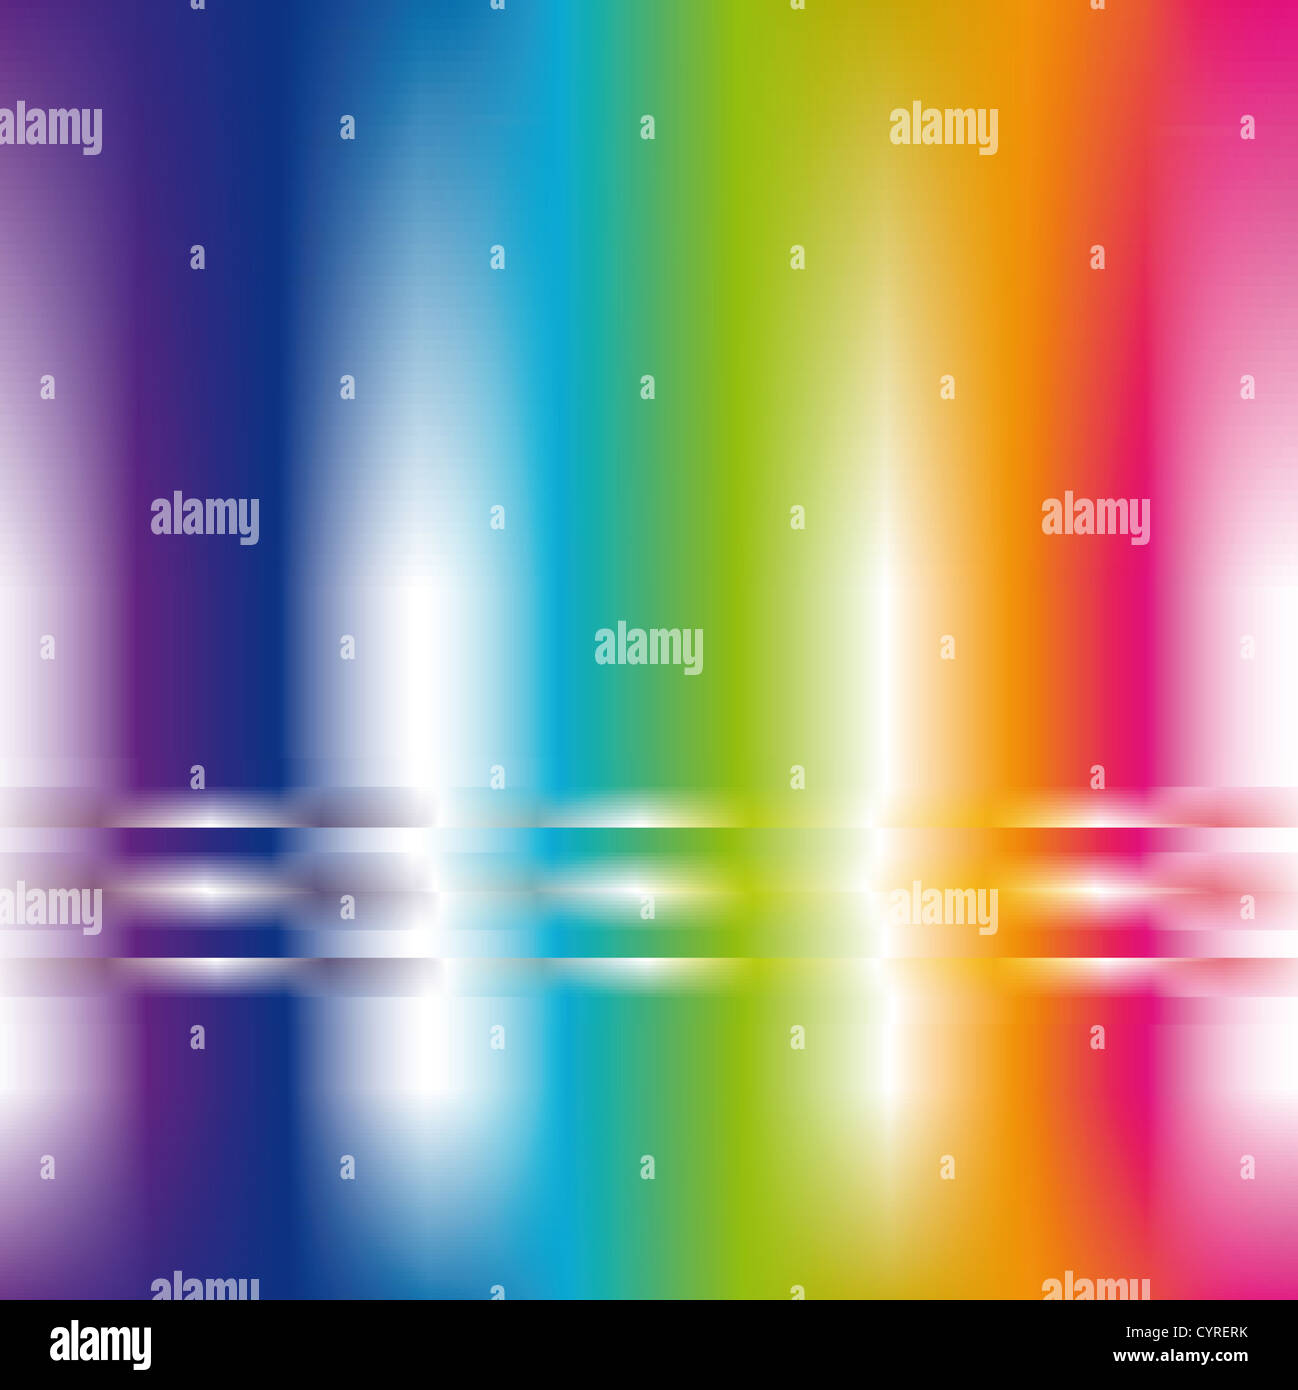 square abstract background in pastel rainbow colors - Stock Image